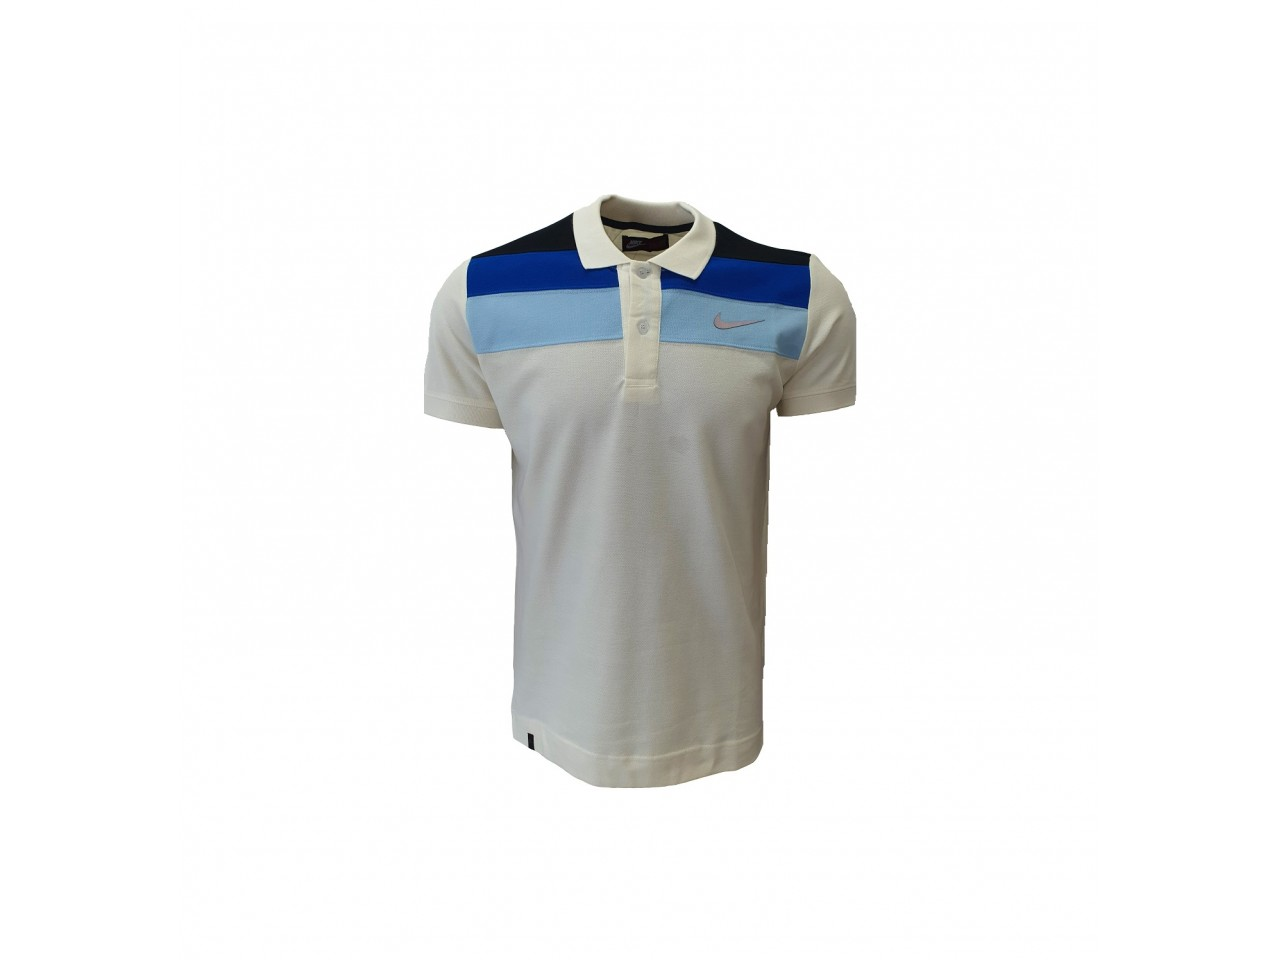 Nike Polo T-Shirt White Light Blue Dark blue